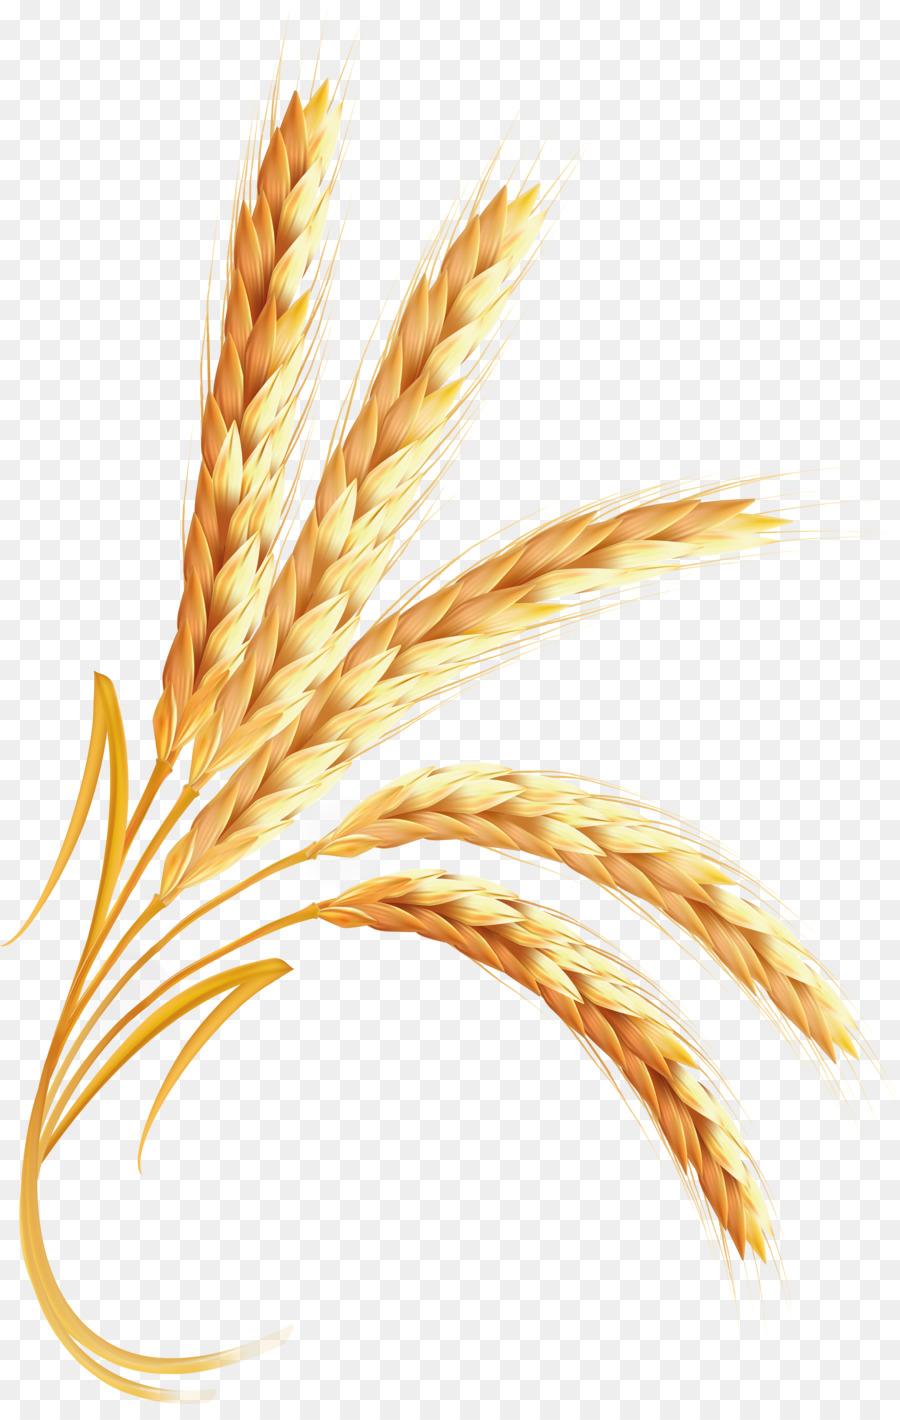 Food transparent clip art. Wheat clipart cartoon